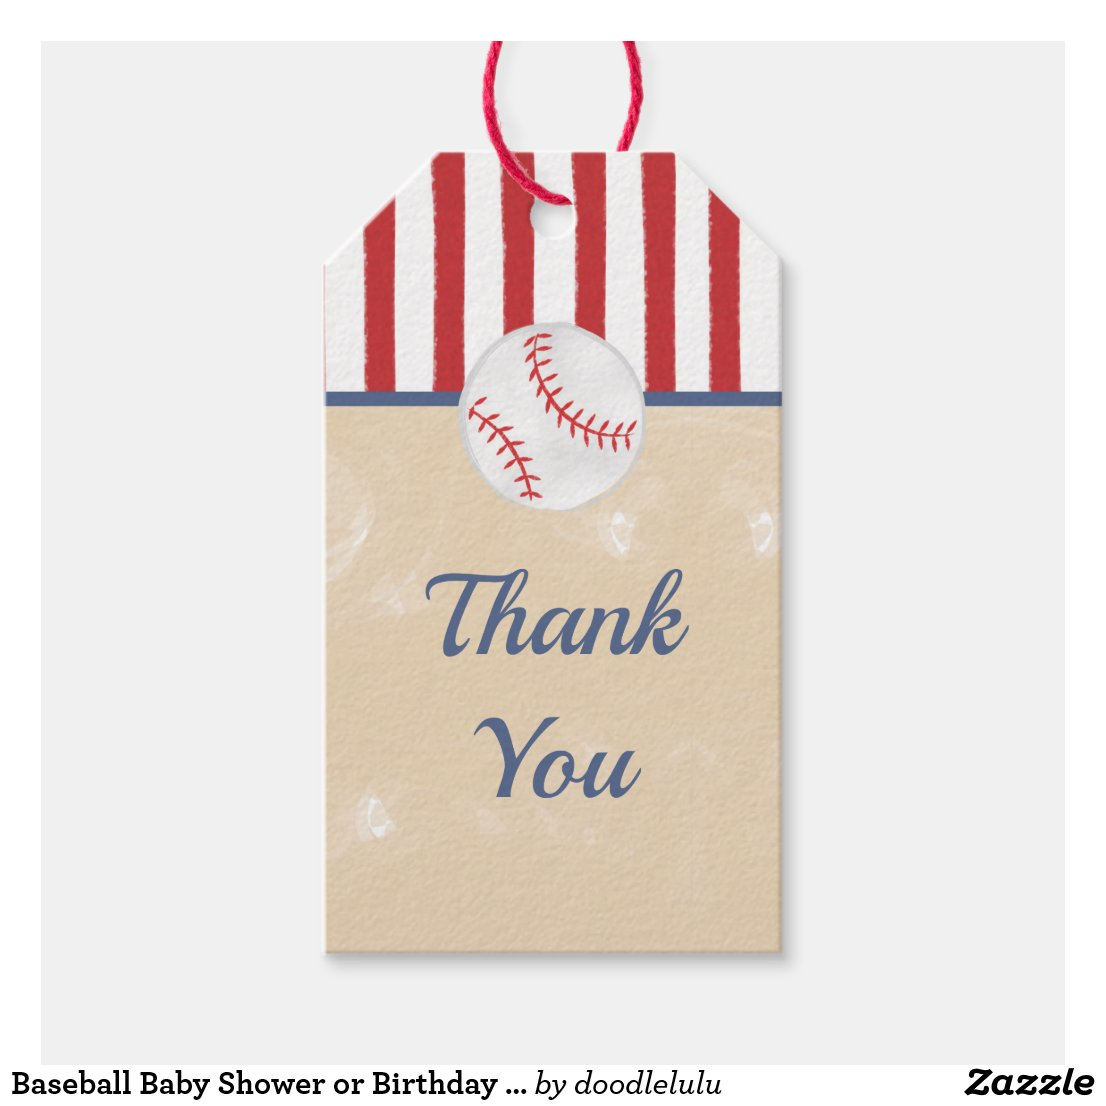 Baseball Baby Shower or Birthday Gift Tag, Classic Gift Tags